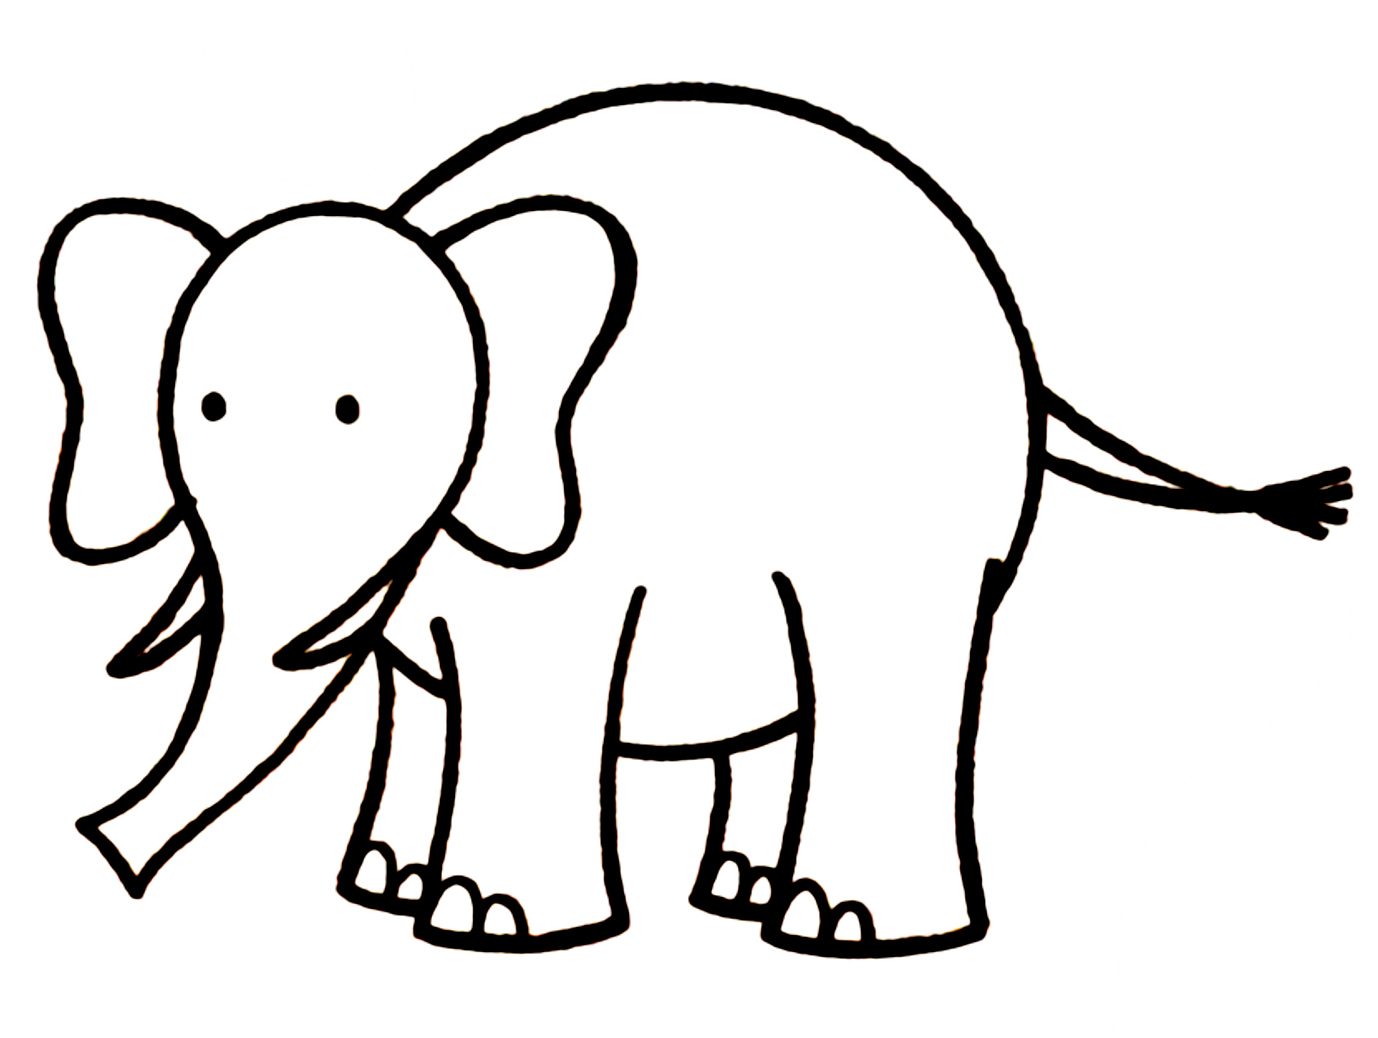 Free Elephant Drawing, Download Free Clip Art, Free Clip Art on.